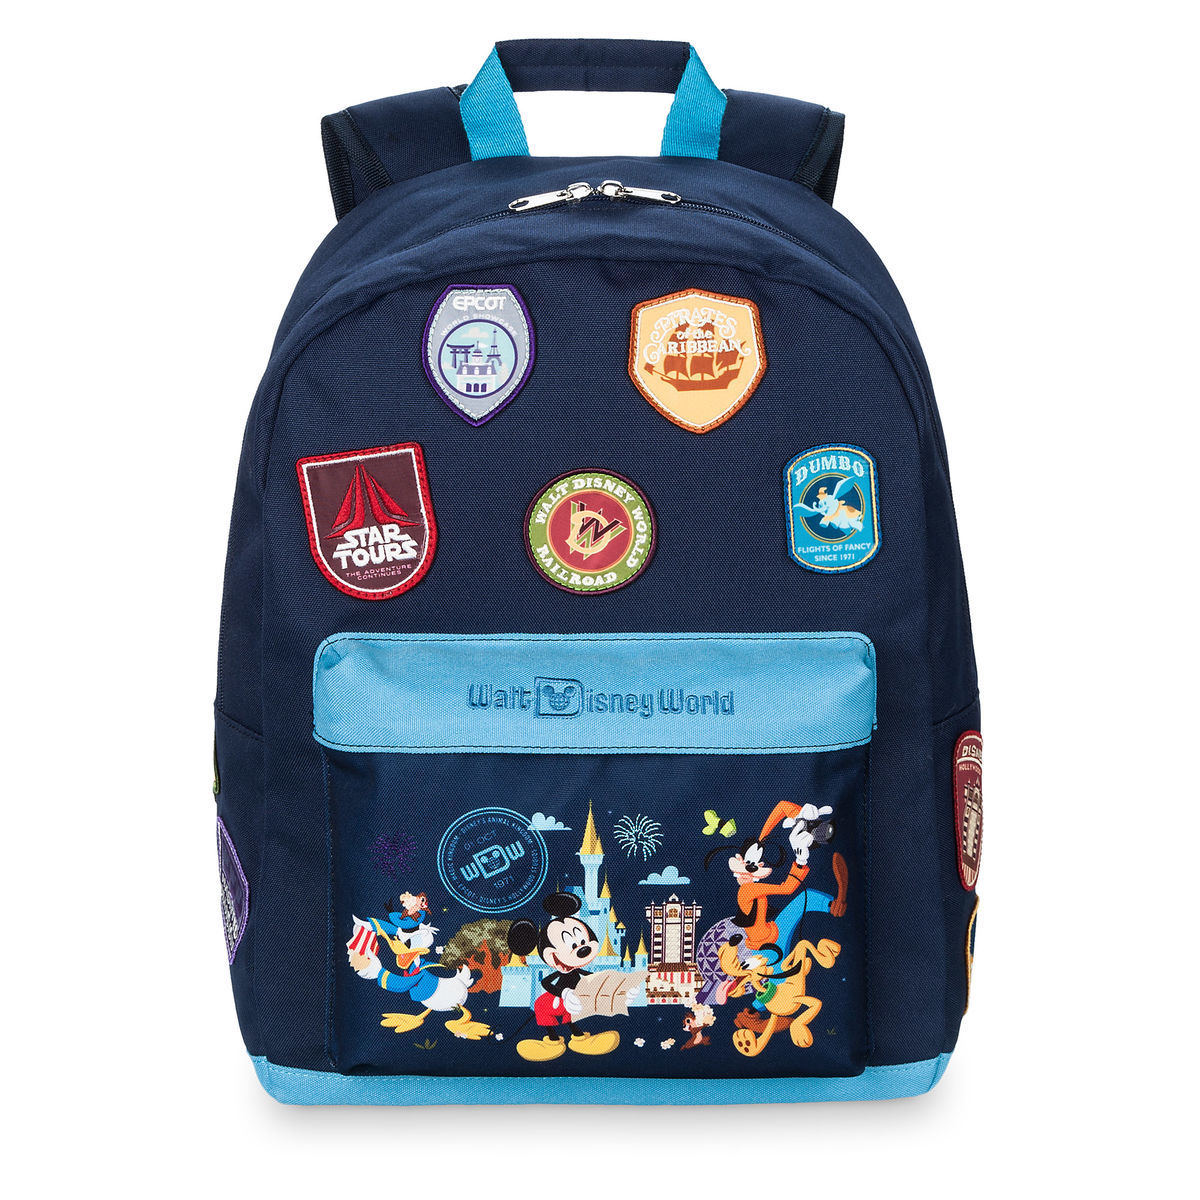 4bcc22e50f23 Product Image of Mickey Mouse and Friends Backpack - Walt Disney World   1